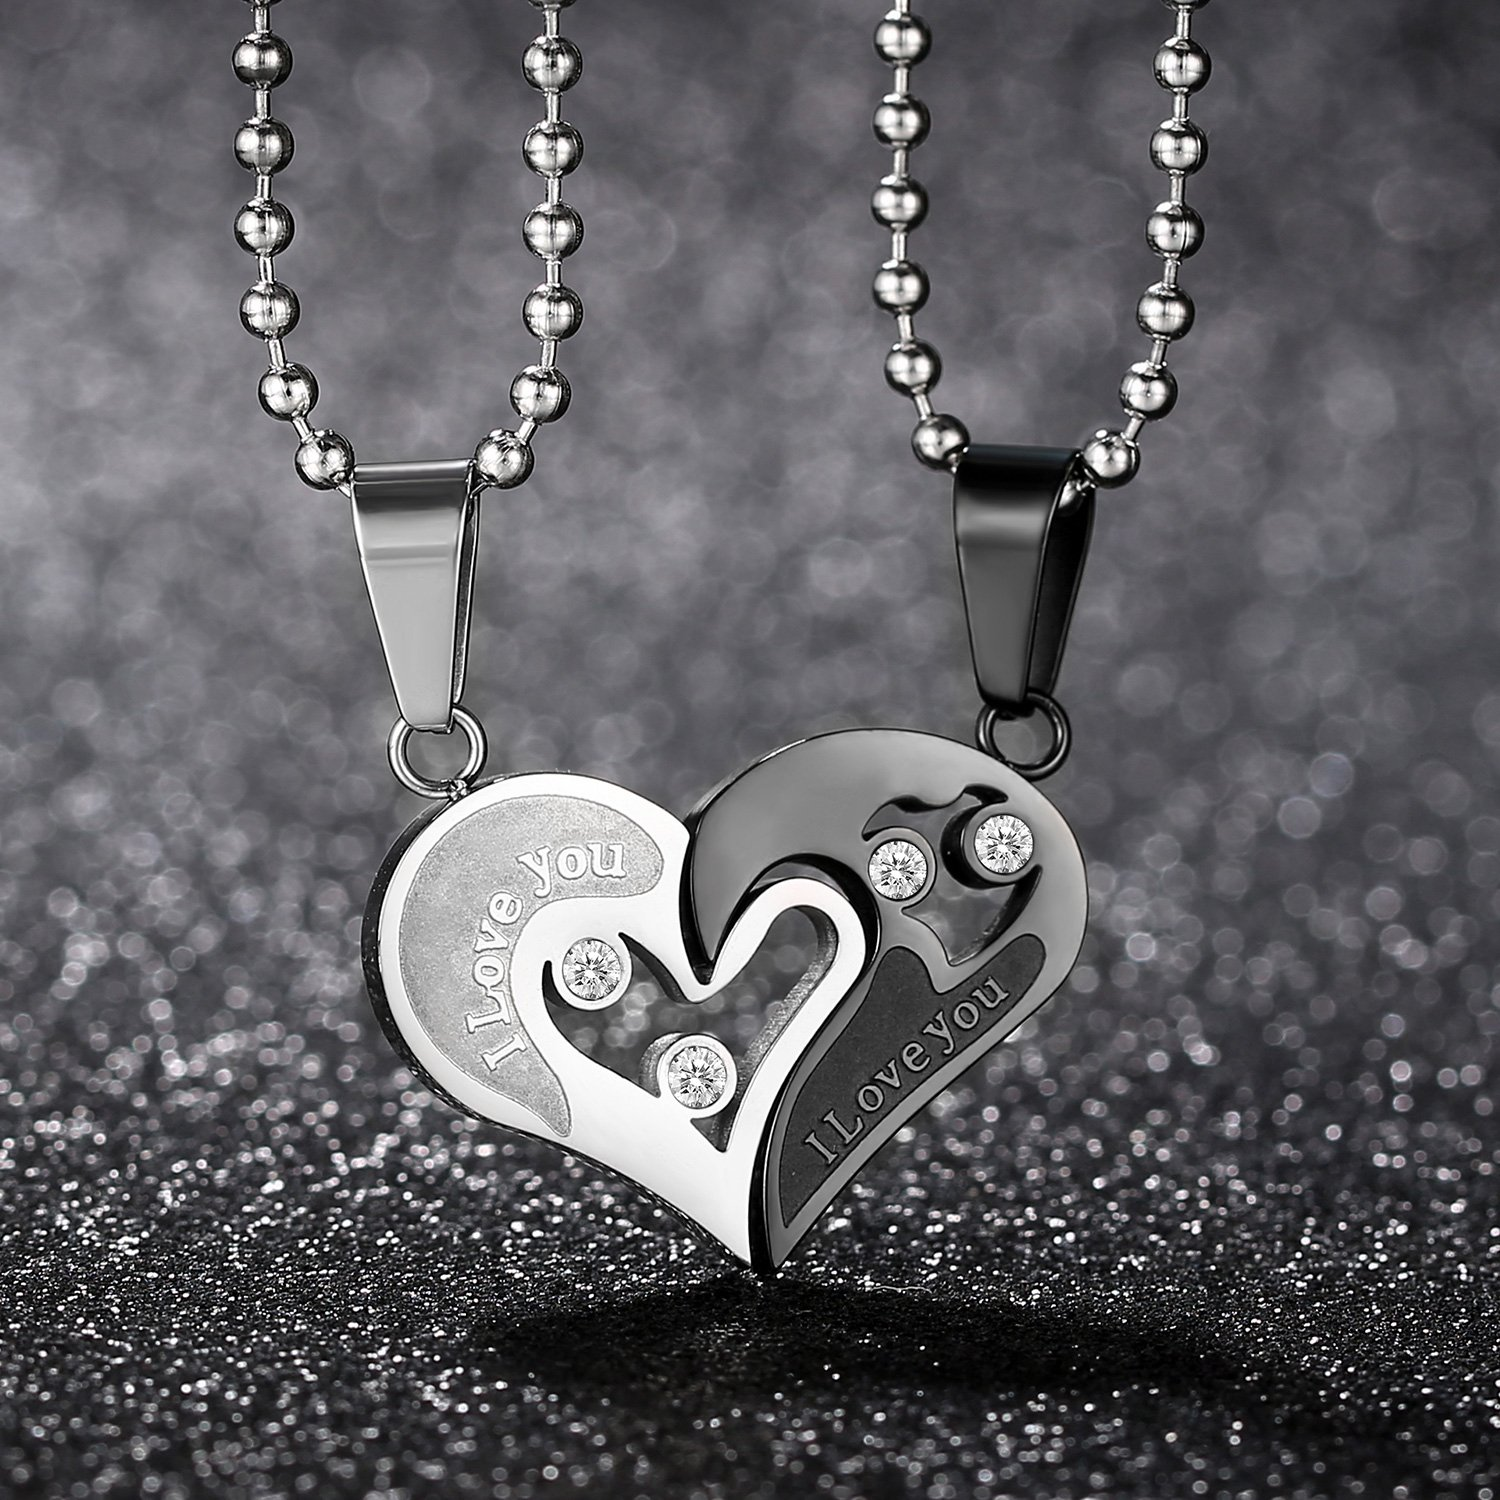 93ac6b2d35 GAGAFEEL His Hers Couple Necklace Stainless Steel Pendant Heart CZ Puzzle  Matching Set I Love You. Yêu thích